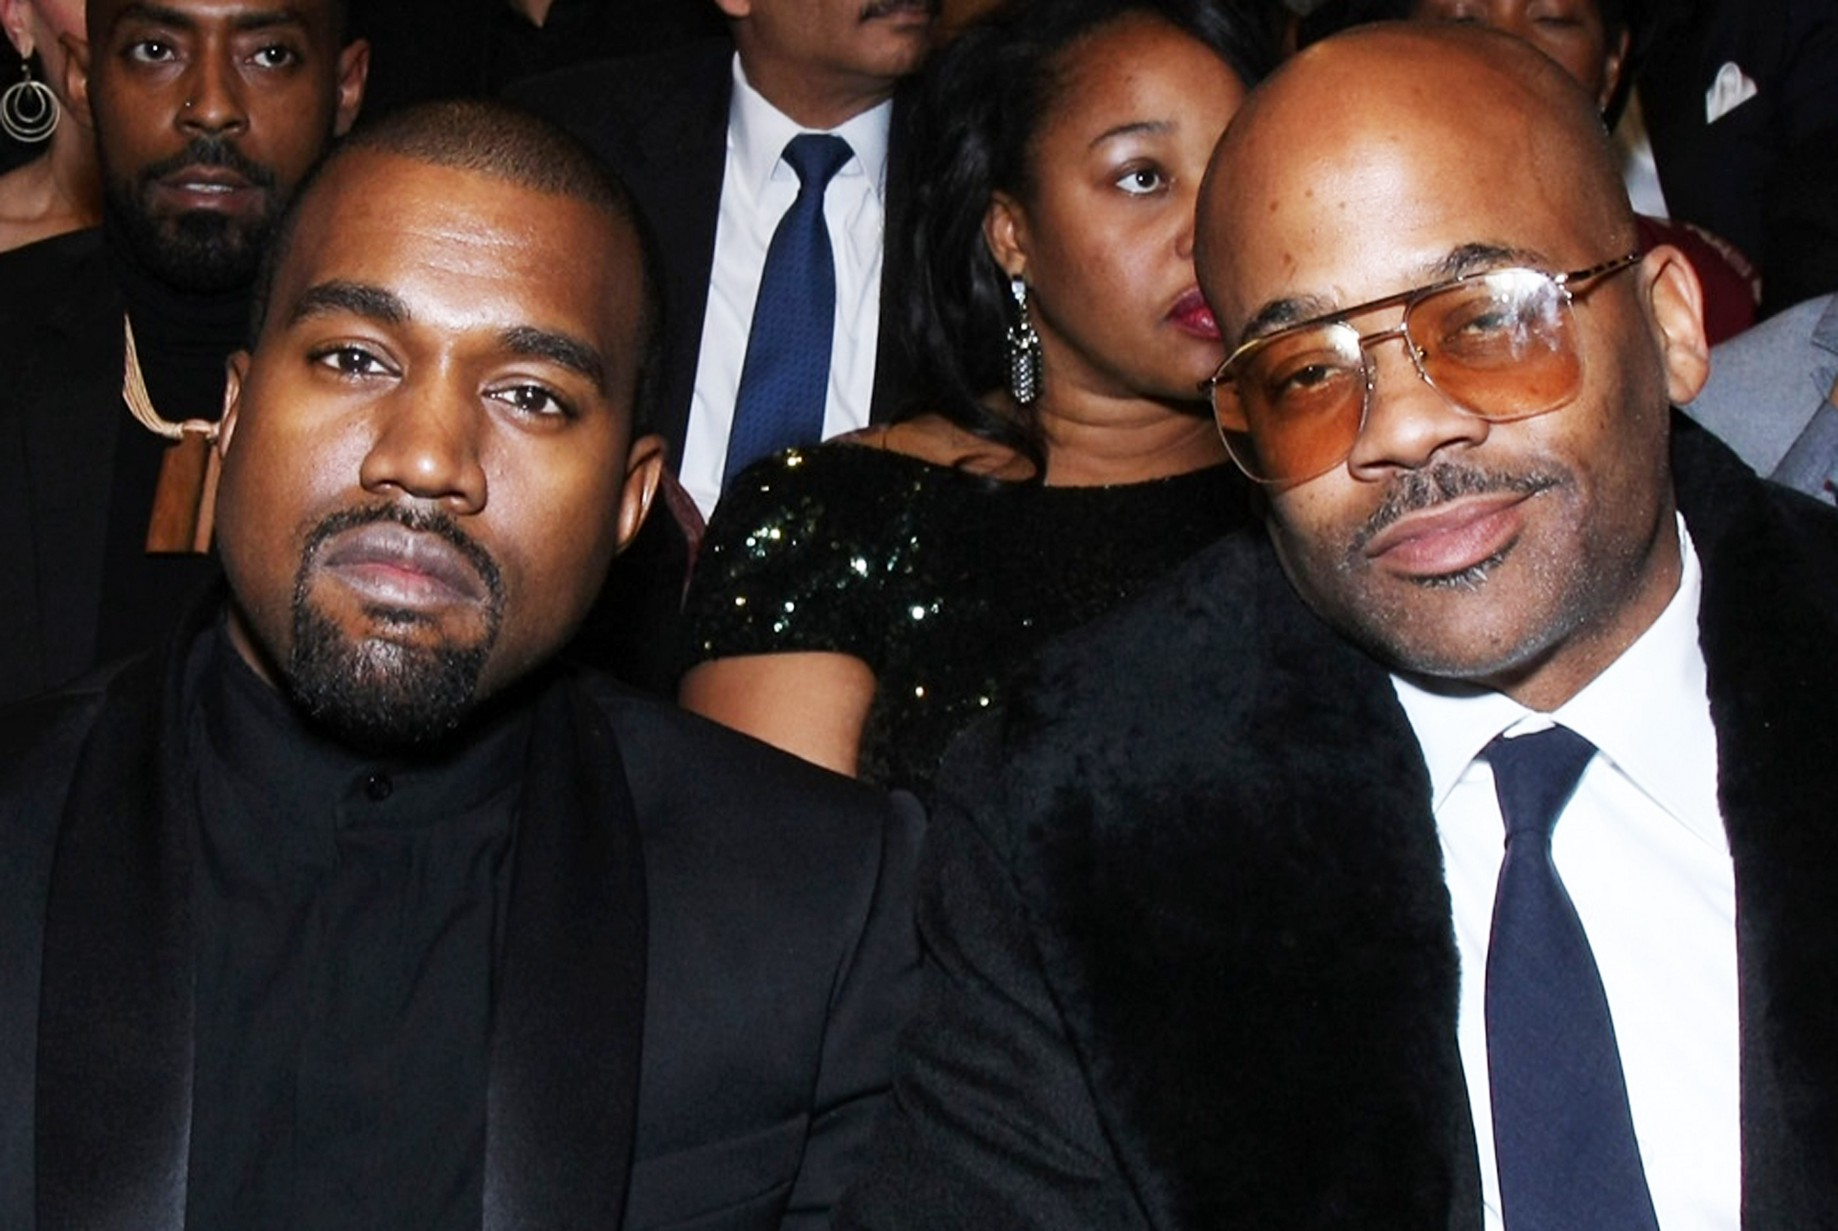 The Crazy Mixed Up World of Damon Dash - Paul Cantor - Medium